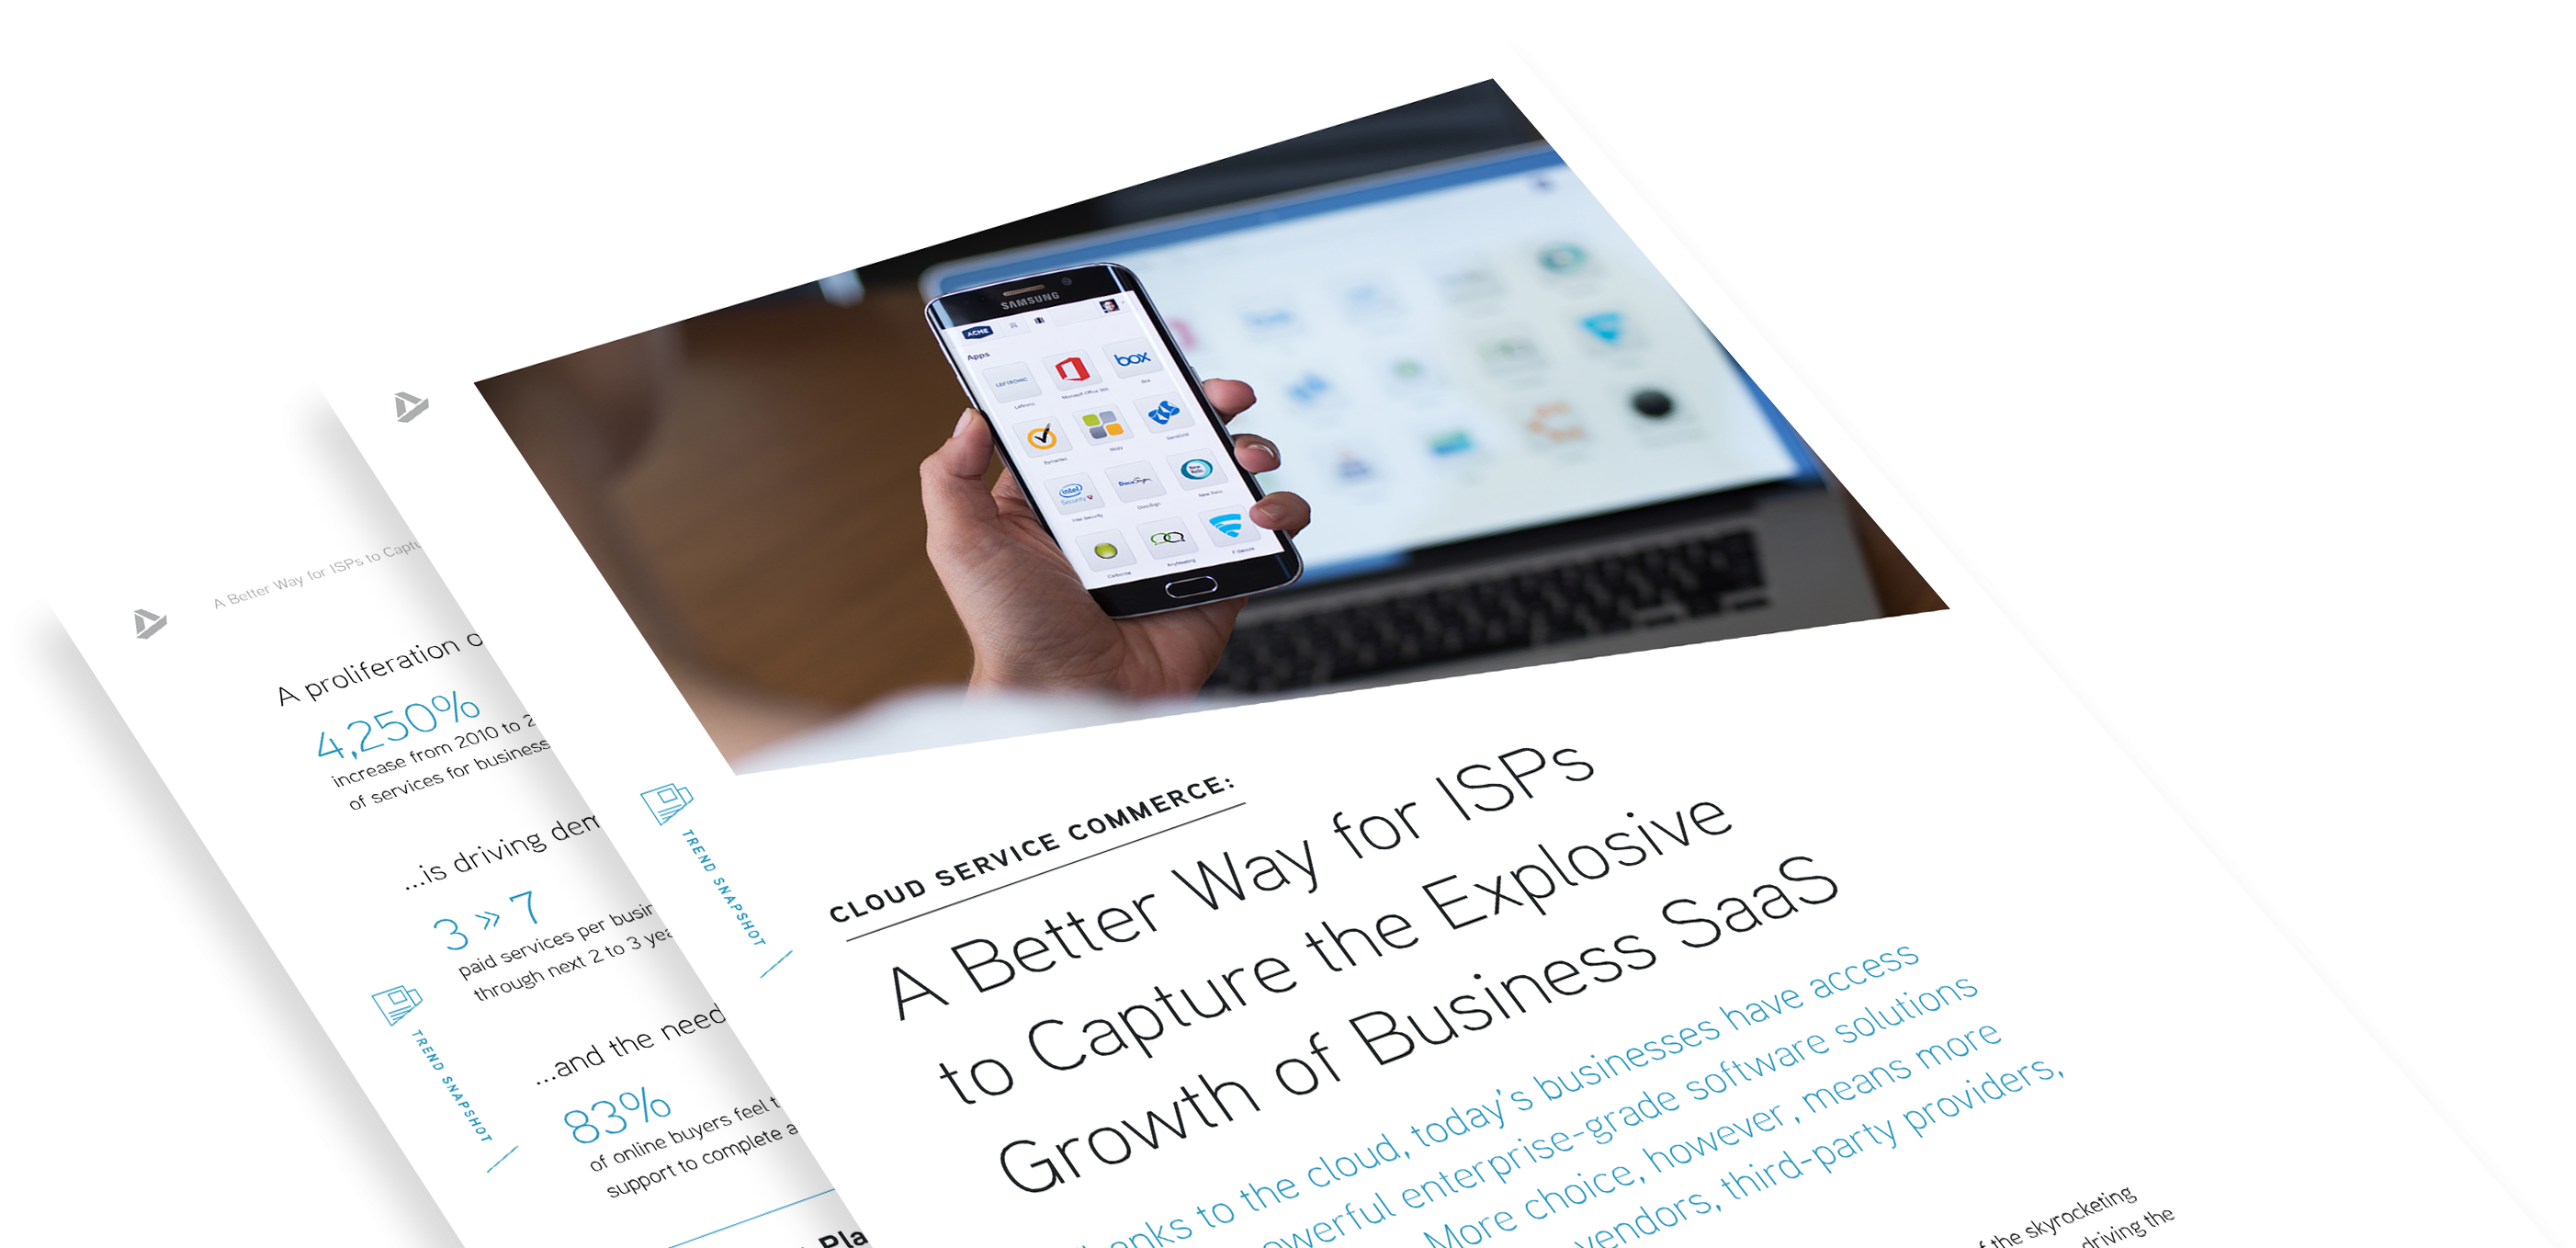 Trend Snapshot: A Better Way for ISPs to Capture Explosive Cloud Growth